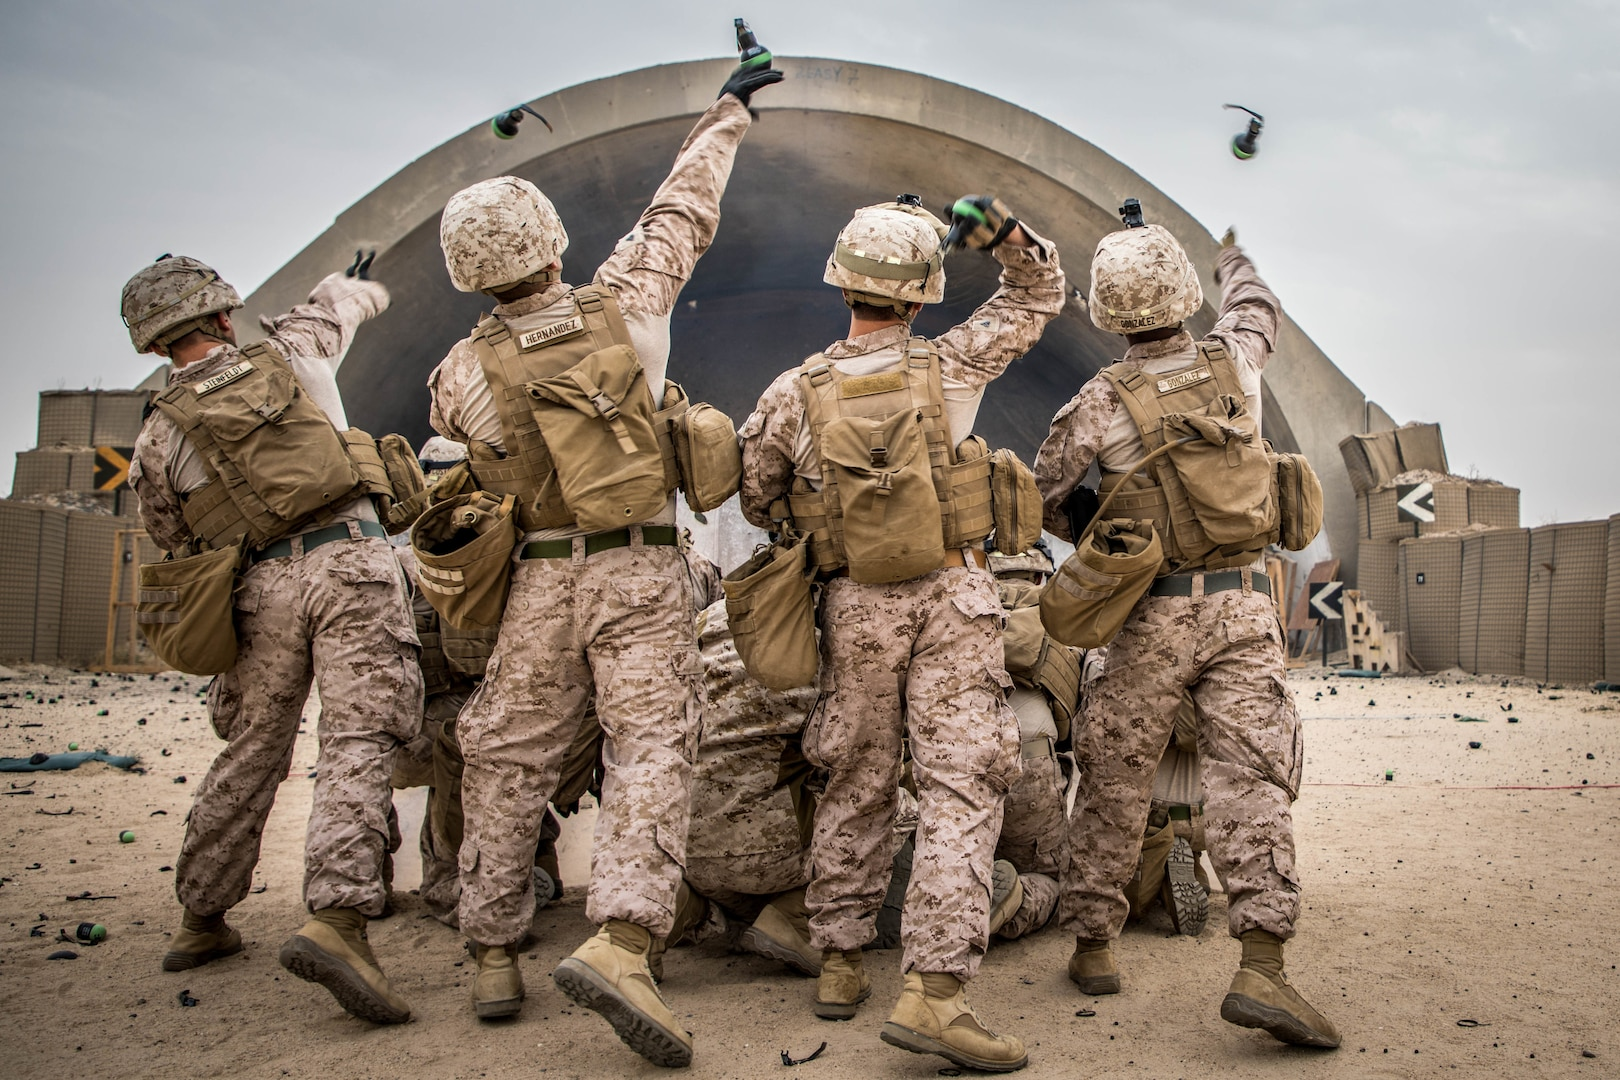 Marines throw nonlethal grenades during nonlethal weapons training exercise, January 18, 2020.